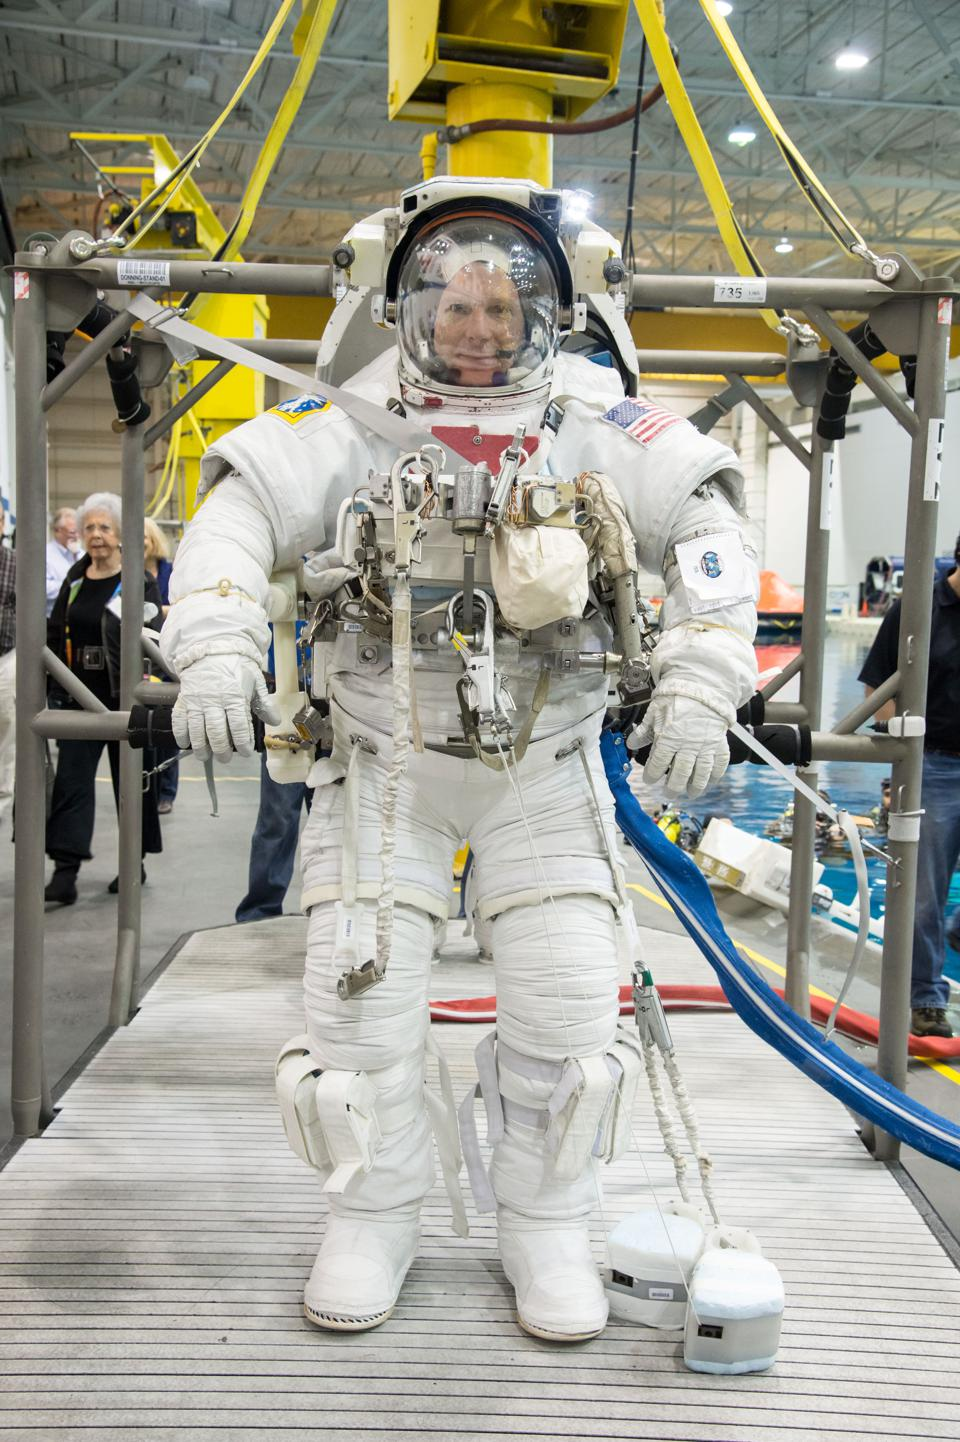 Astronaut, Colonel Terry Virts in his spacesuit